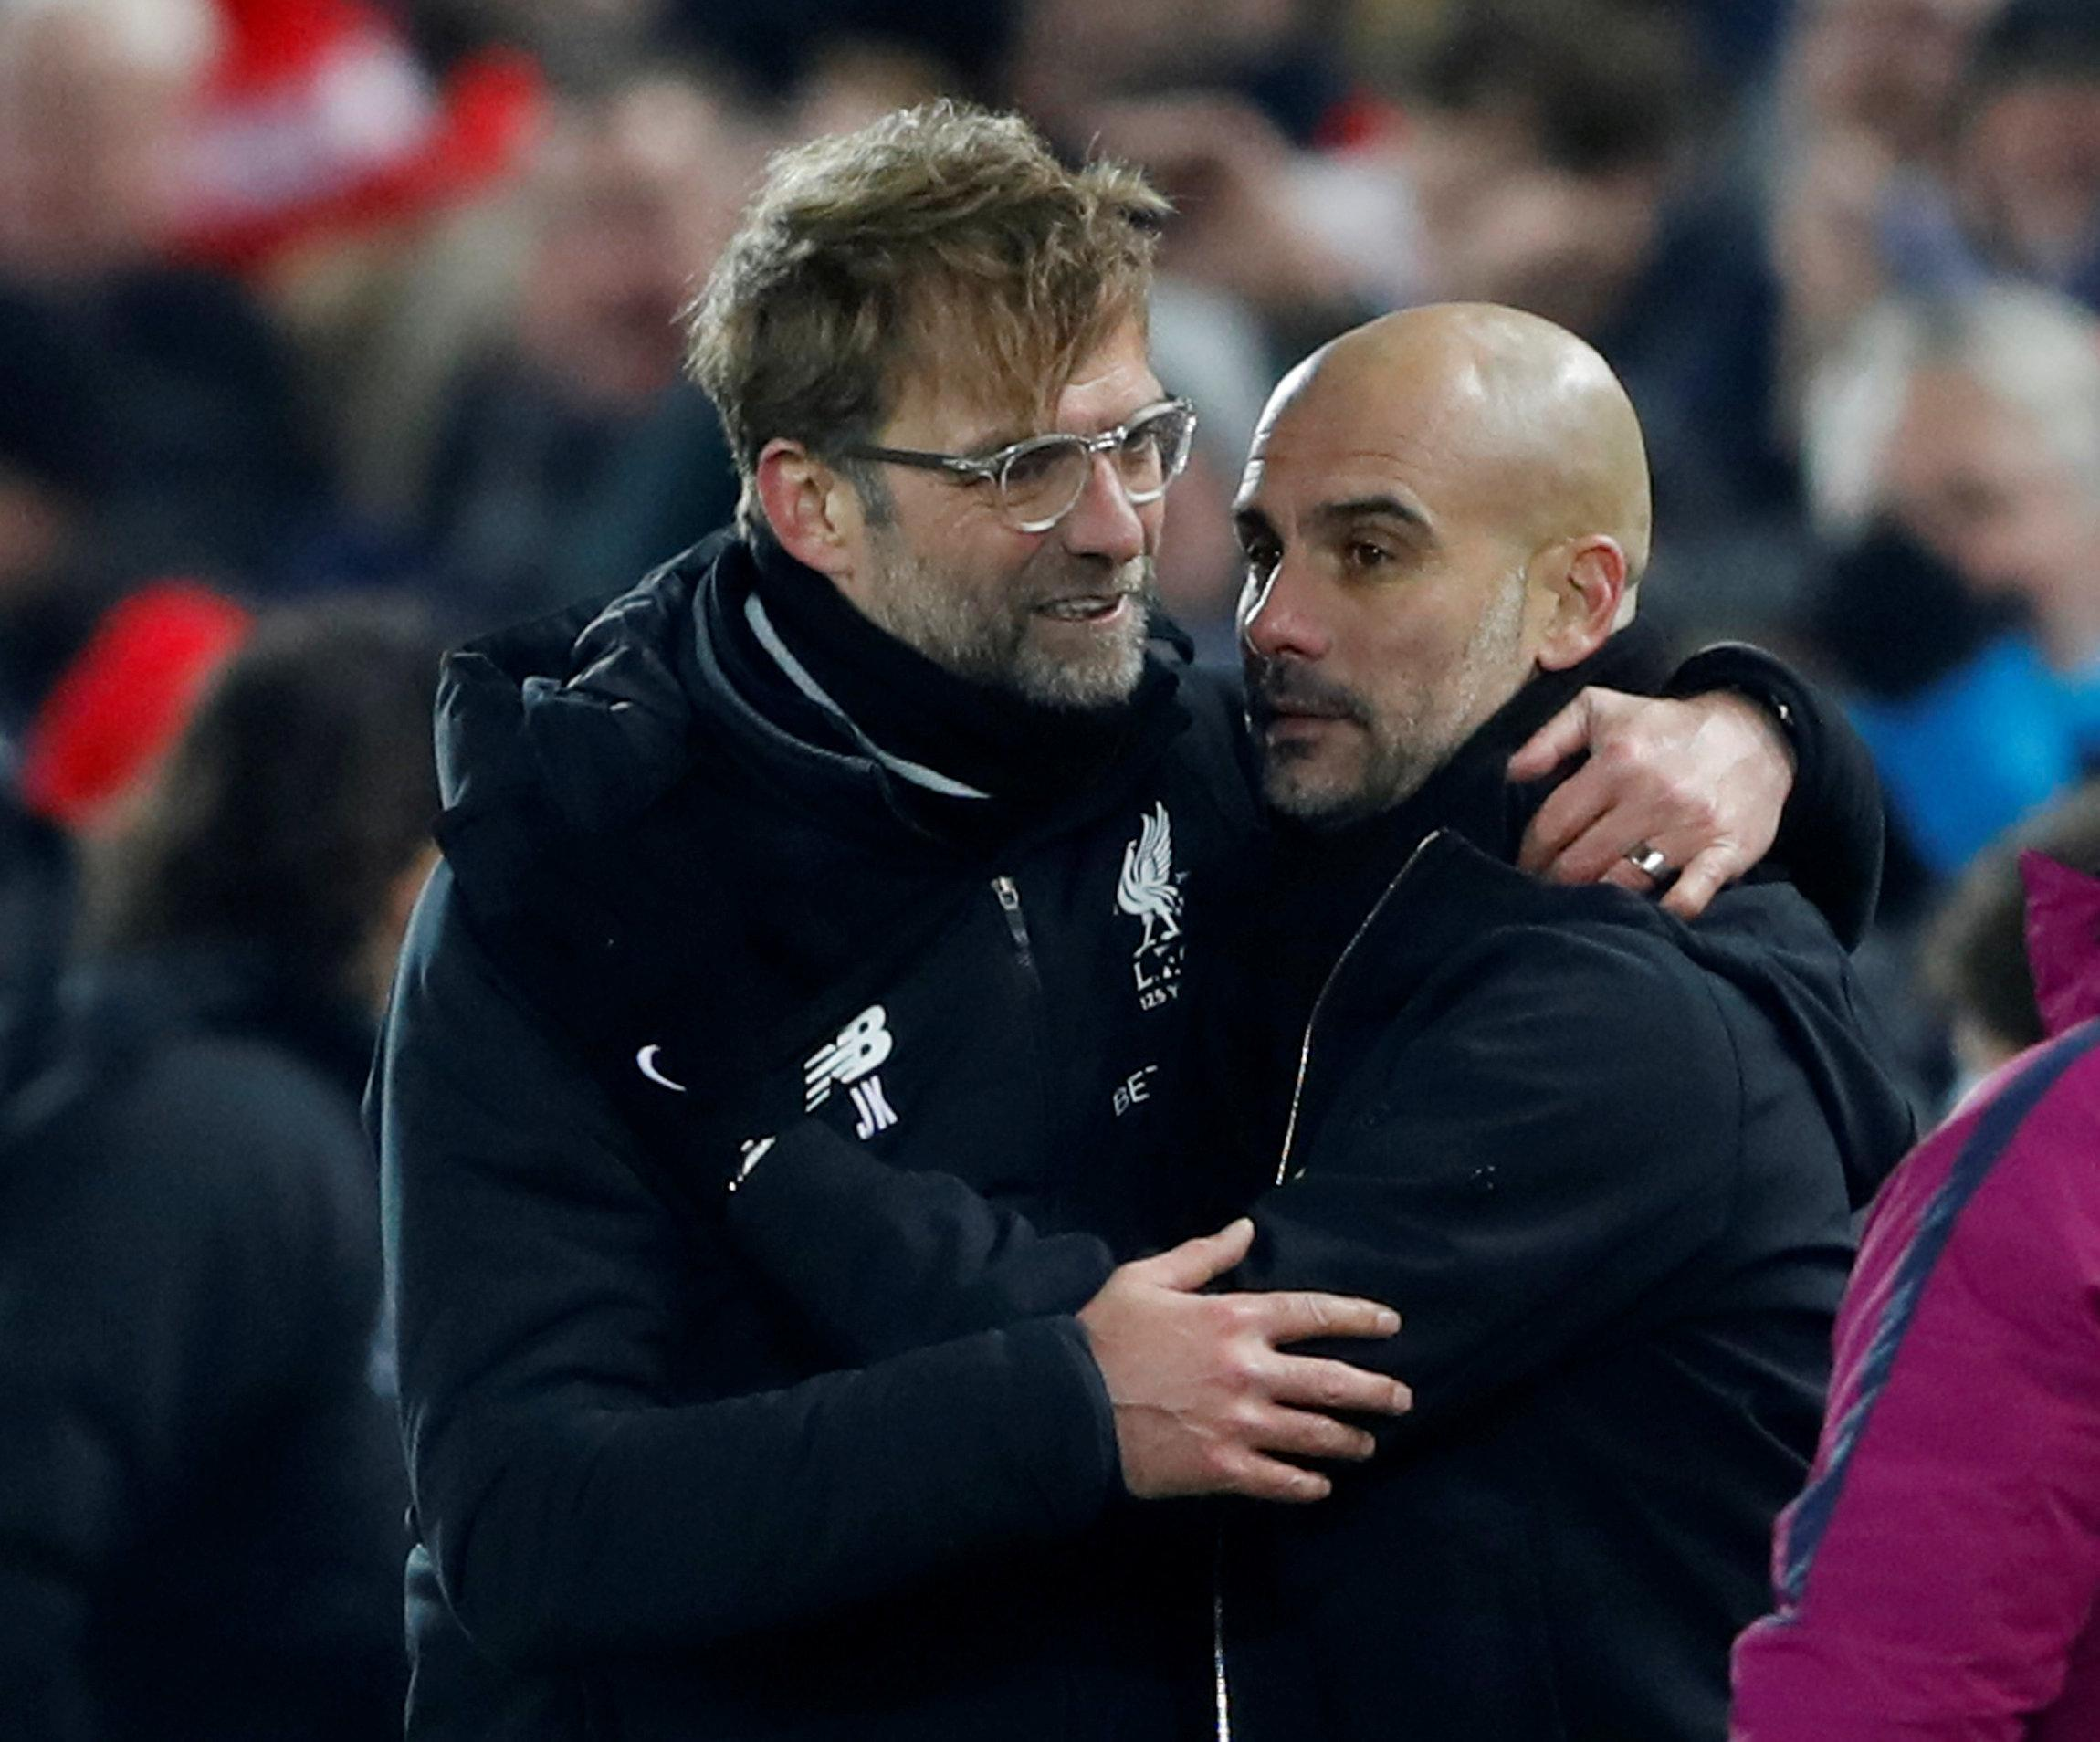 These two oversaw the game of the season back in January